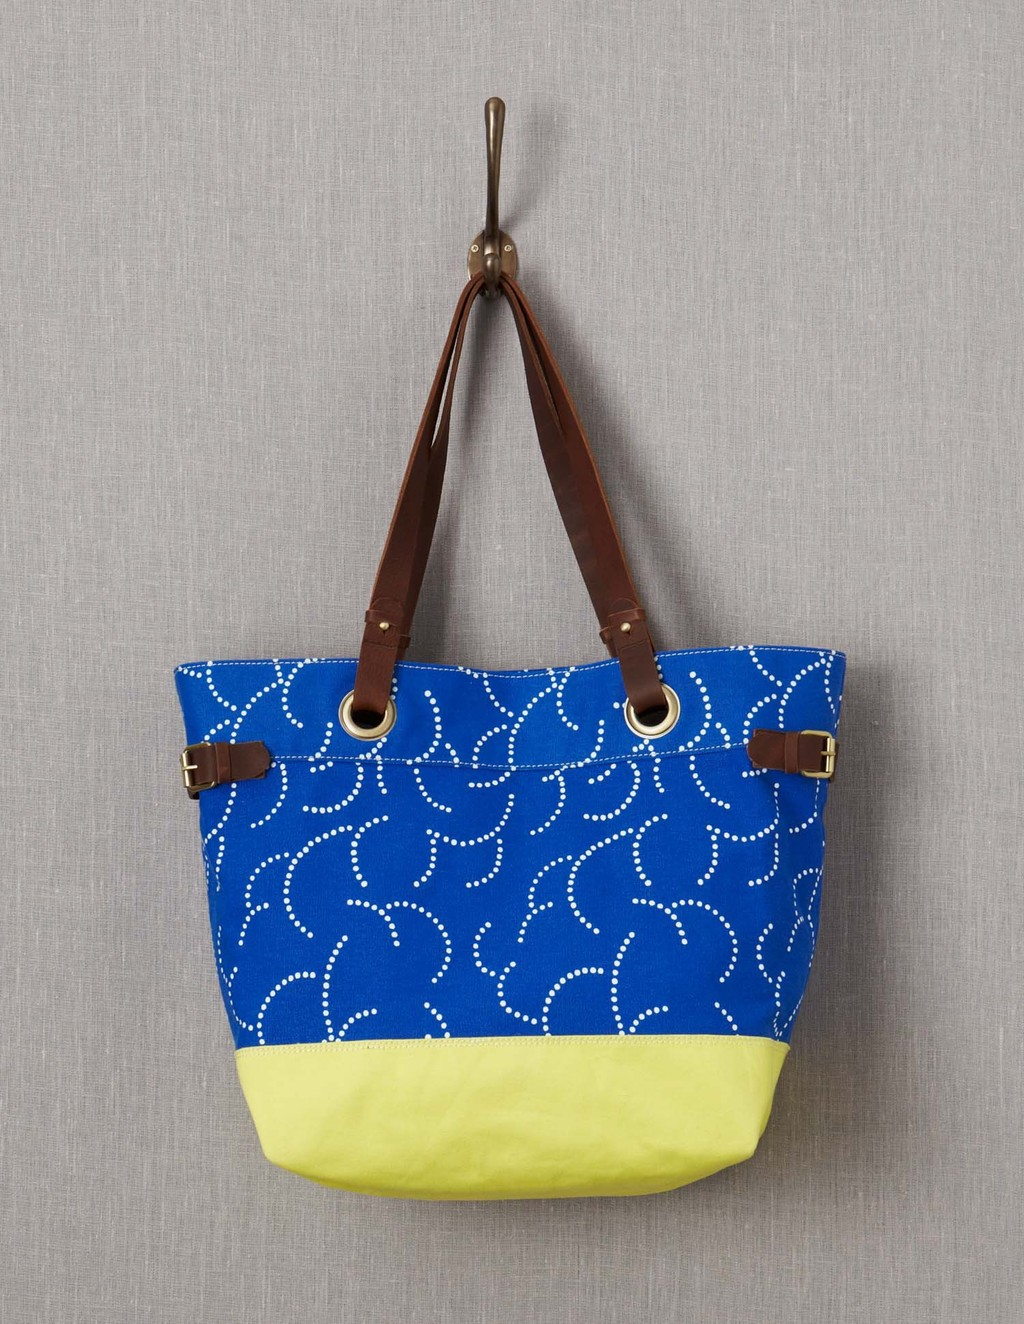 Blighty Beach Bag - predominant colour: royal blue; secondary colour: primrose yellow; occasions: casual, holiday; type of pattern: standard; style: tote; length: handle; size: oversized; material: fabric; finish: plain; pattern: patterned/print; season: a/w 2015